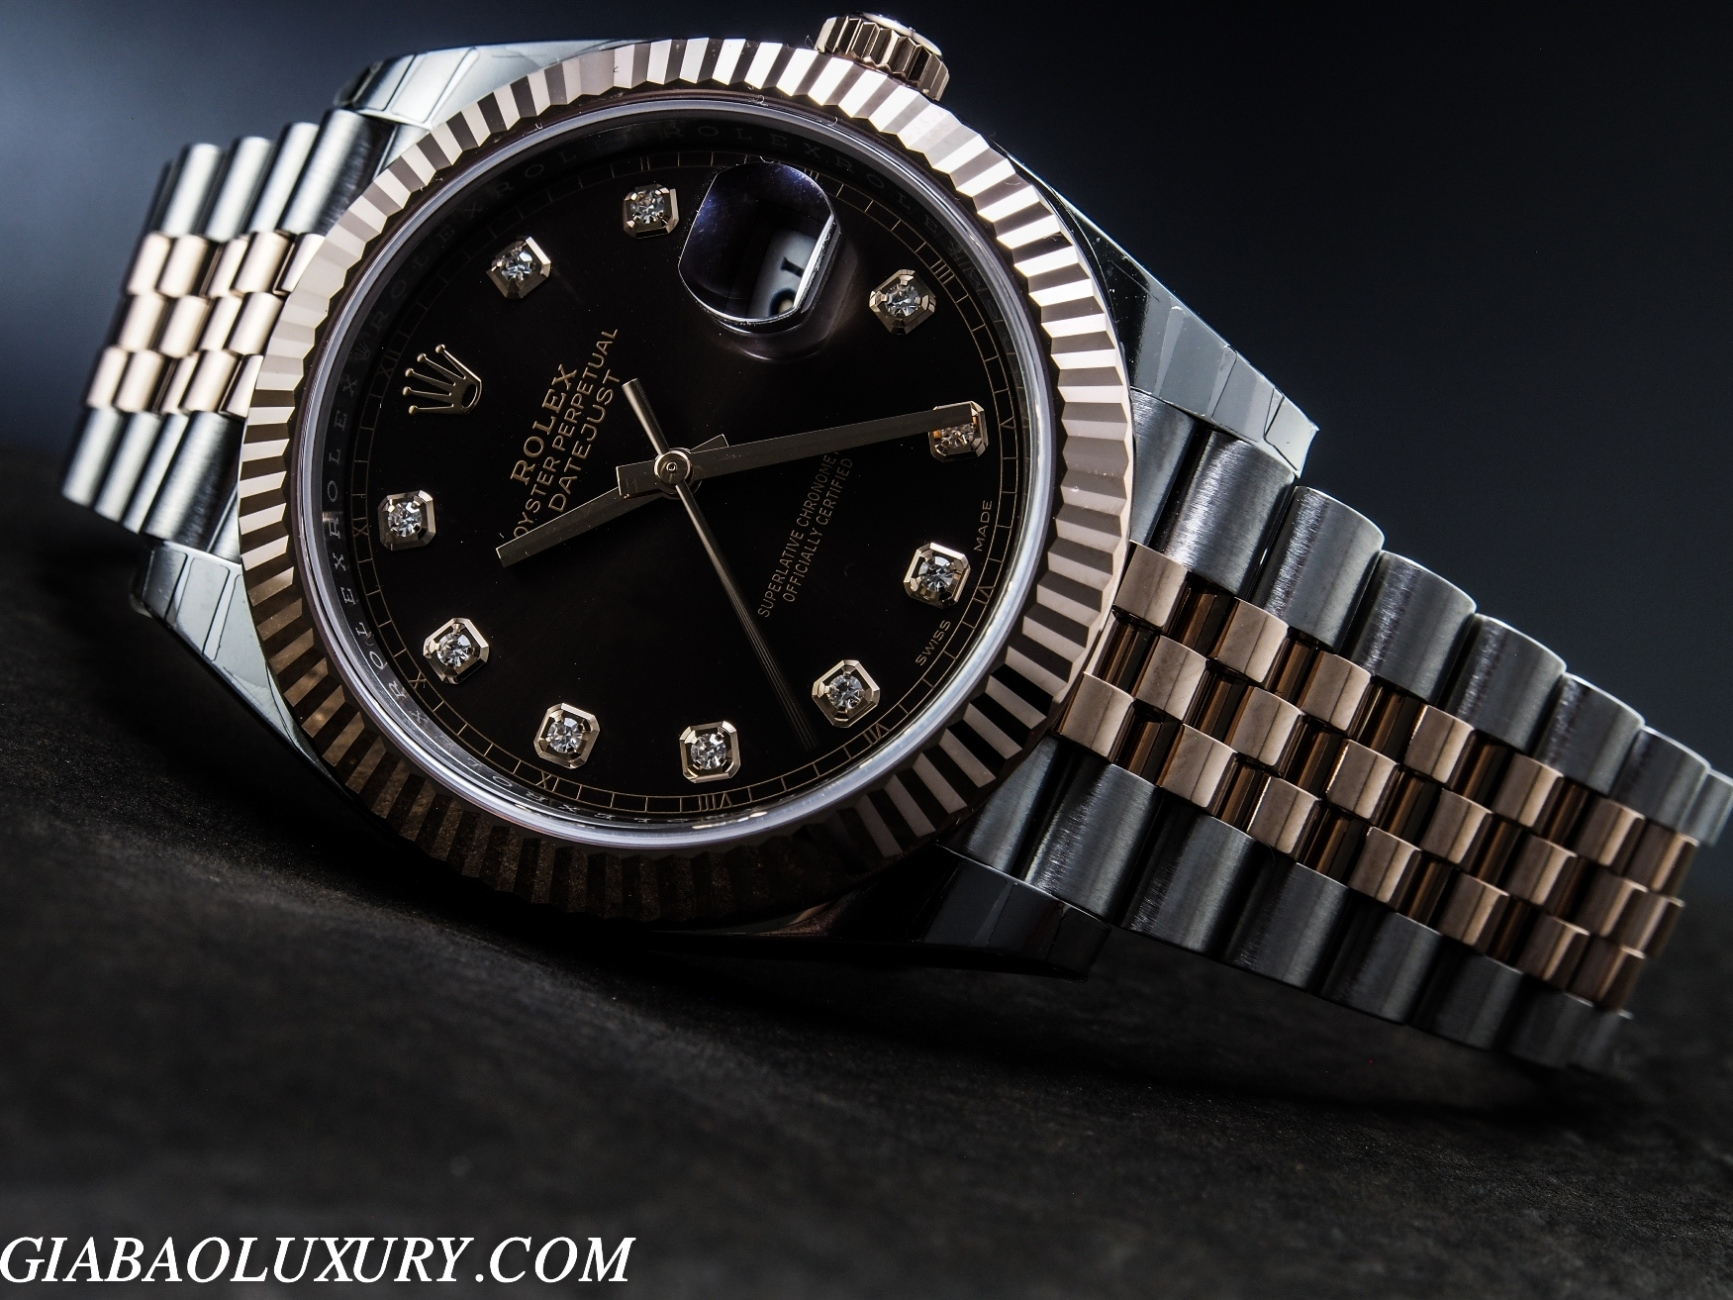 ĐỒNG HỒ ROLEX OYSTER PERPETUAL DATEJUST 126331